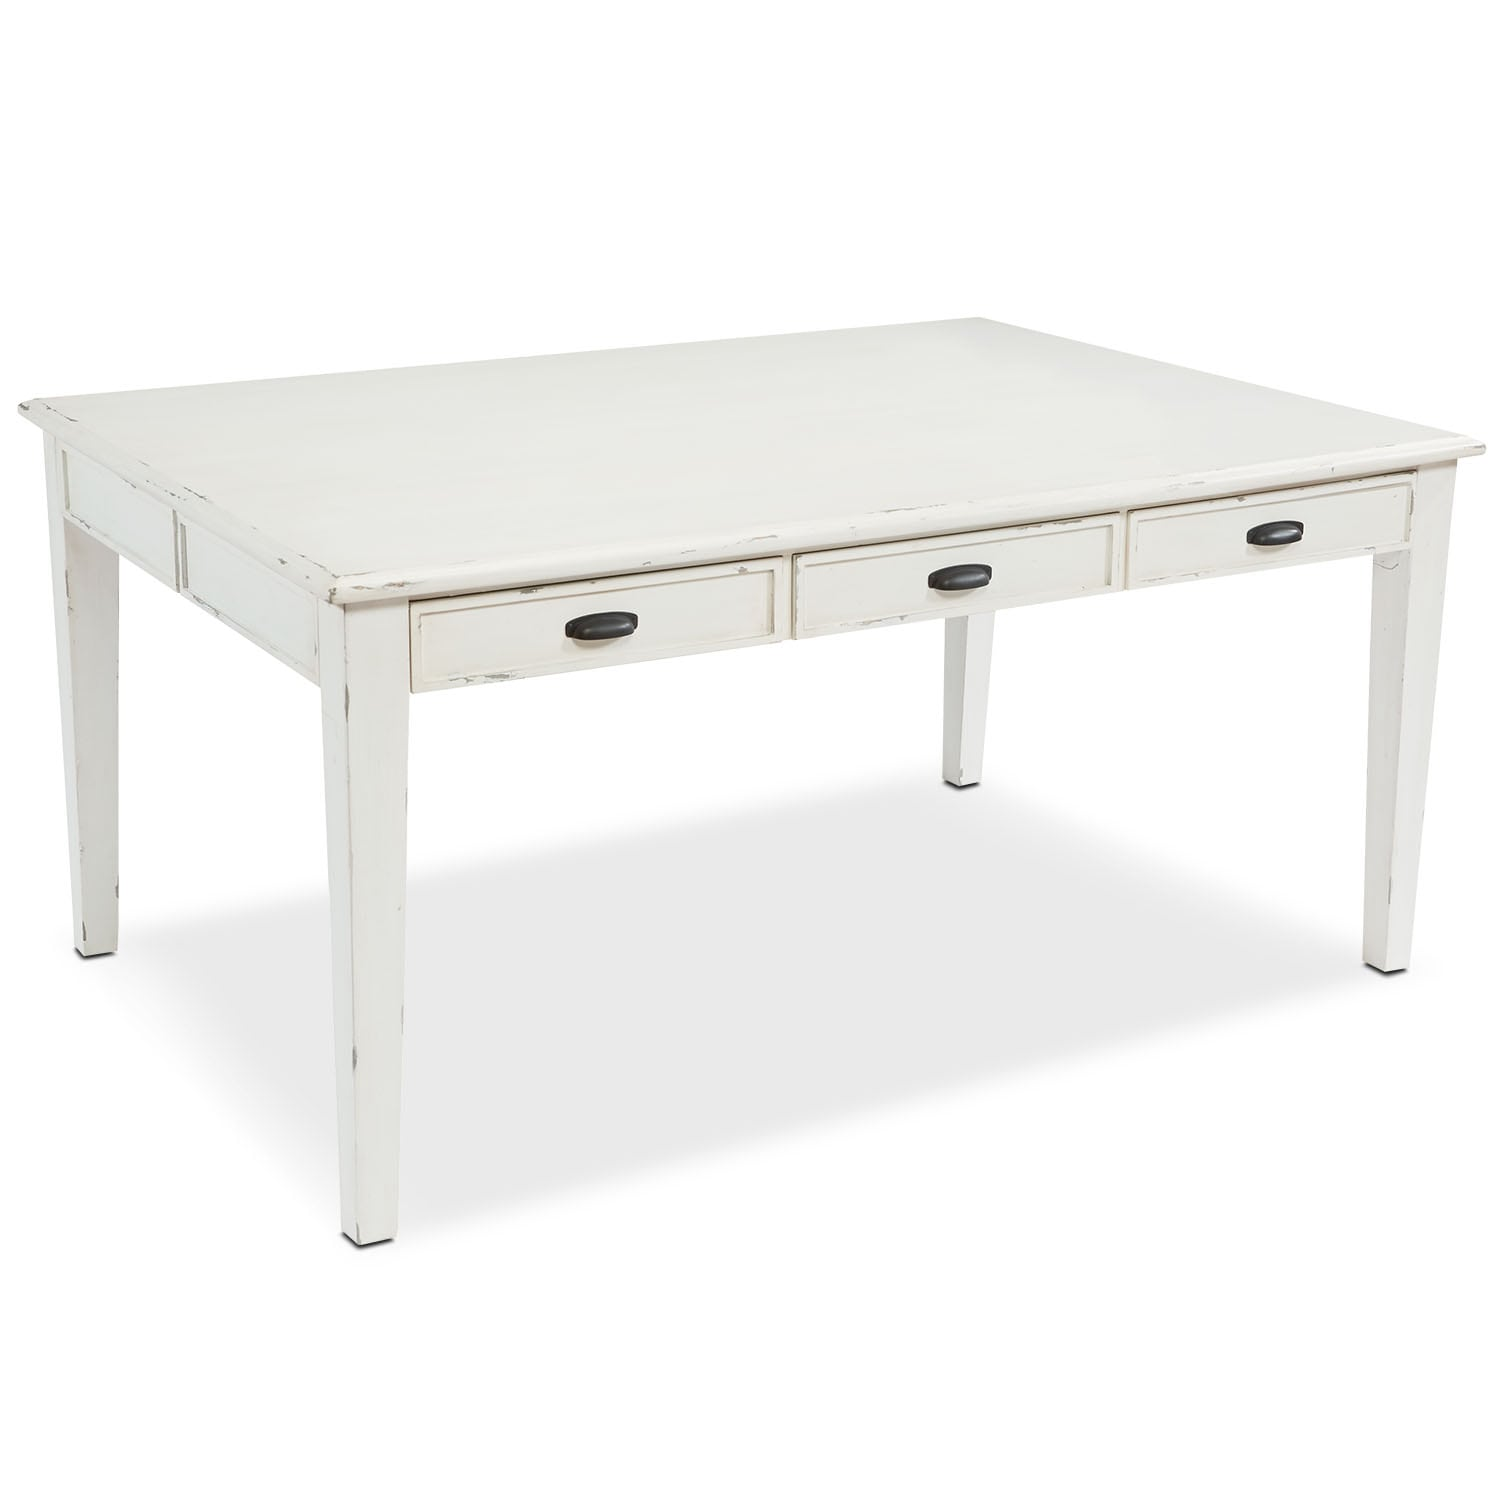 6' Farmhouse Keeping Table - Antique White